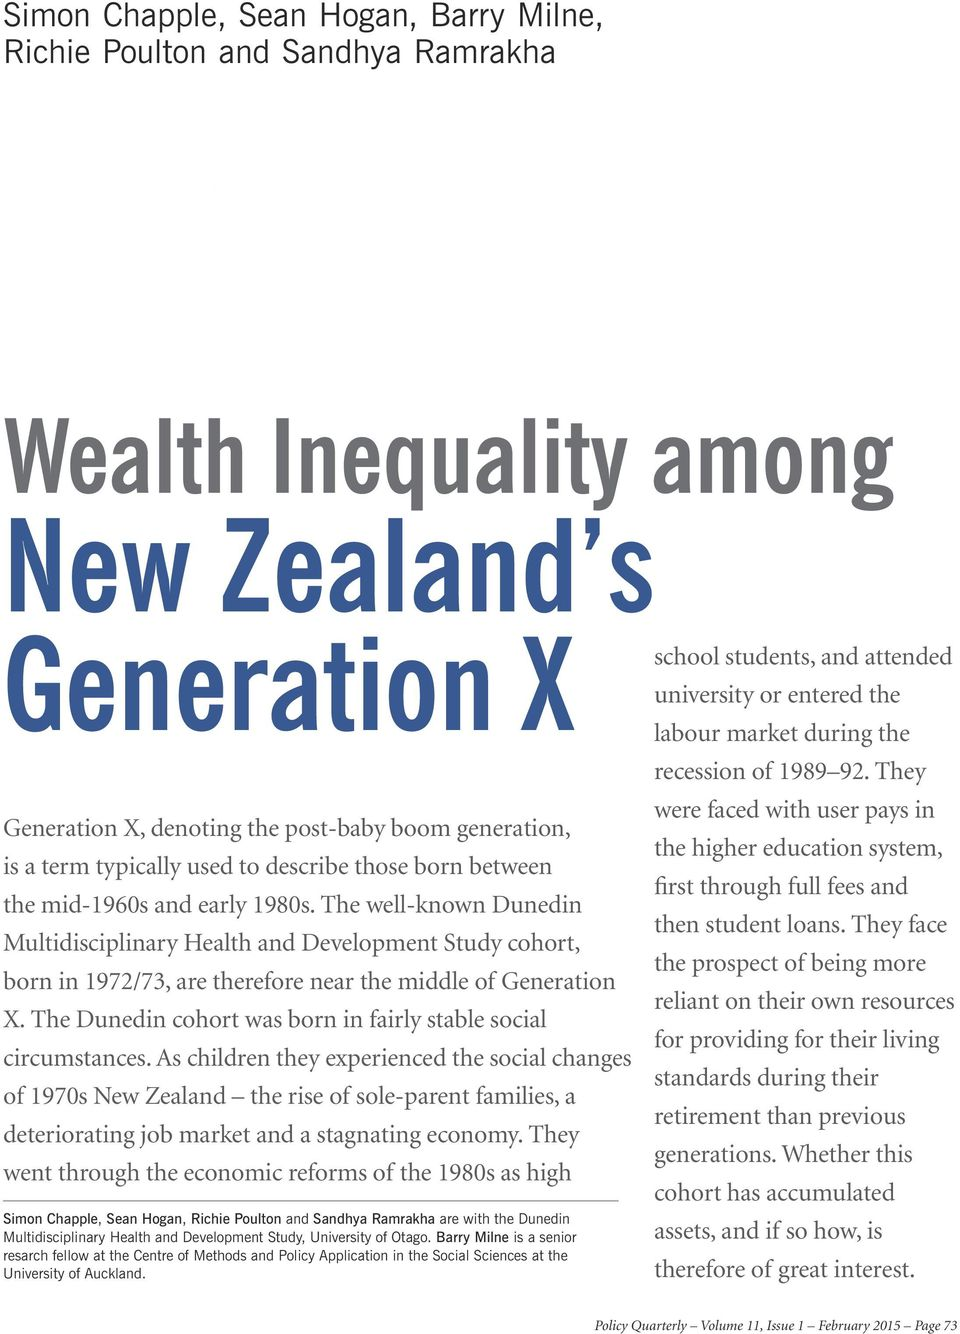 The well-known Dunedin Multidisciplinary Health and Development Study cohort, born in 1972/73, are therefore near the middle of Generation X.